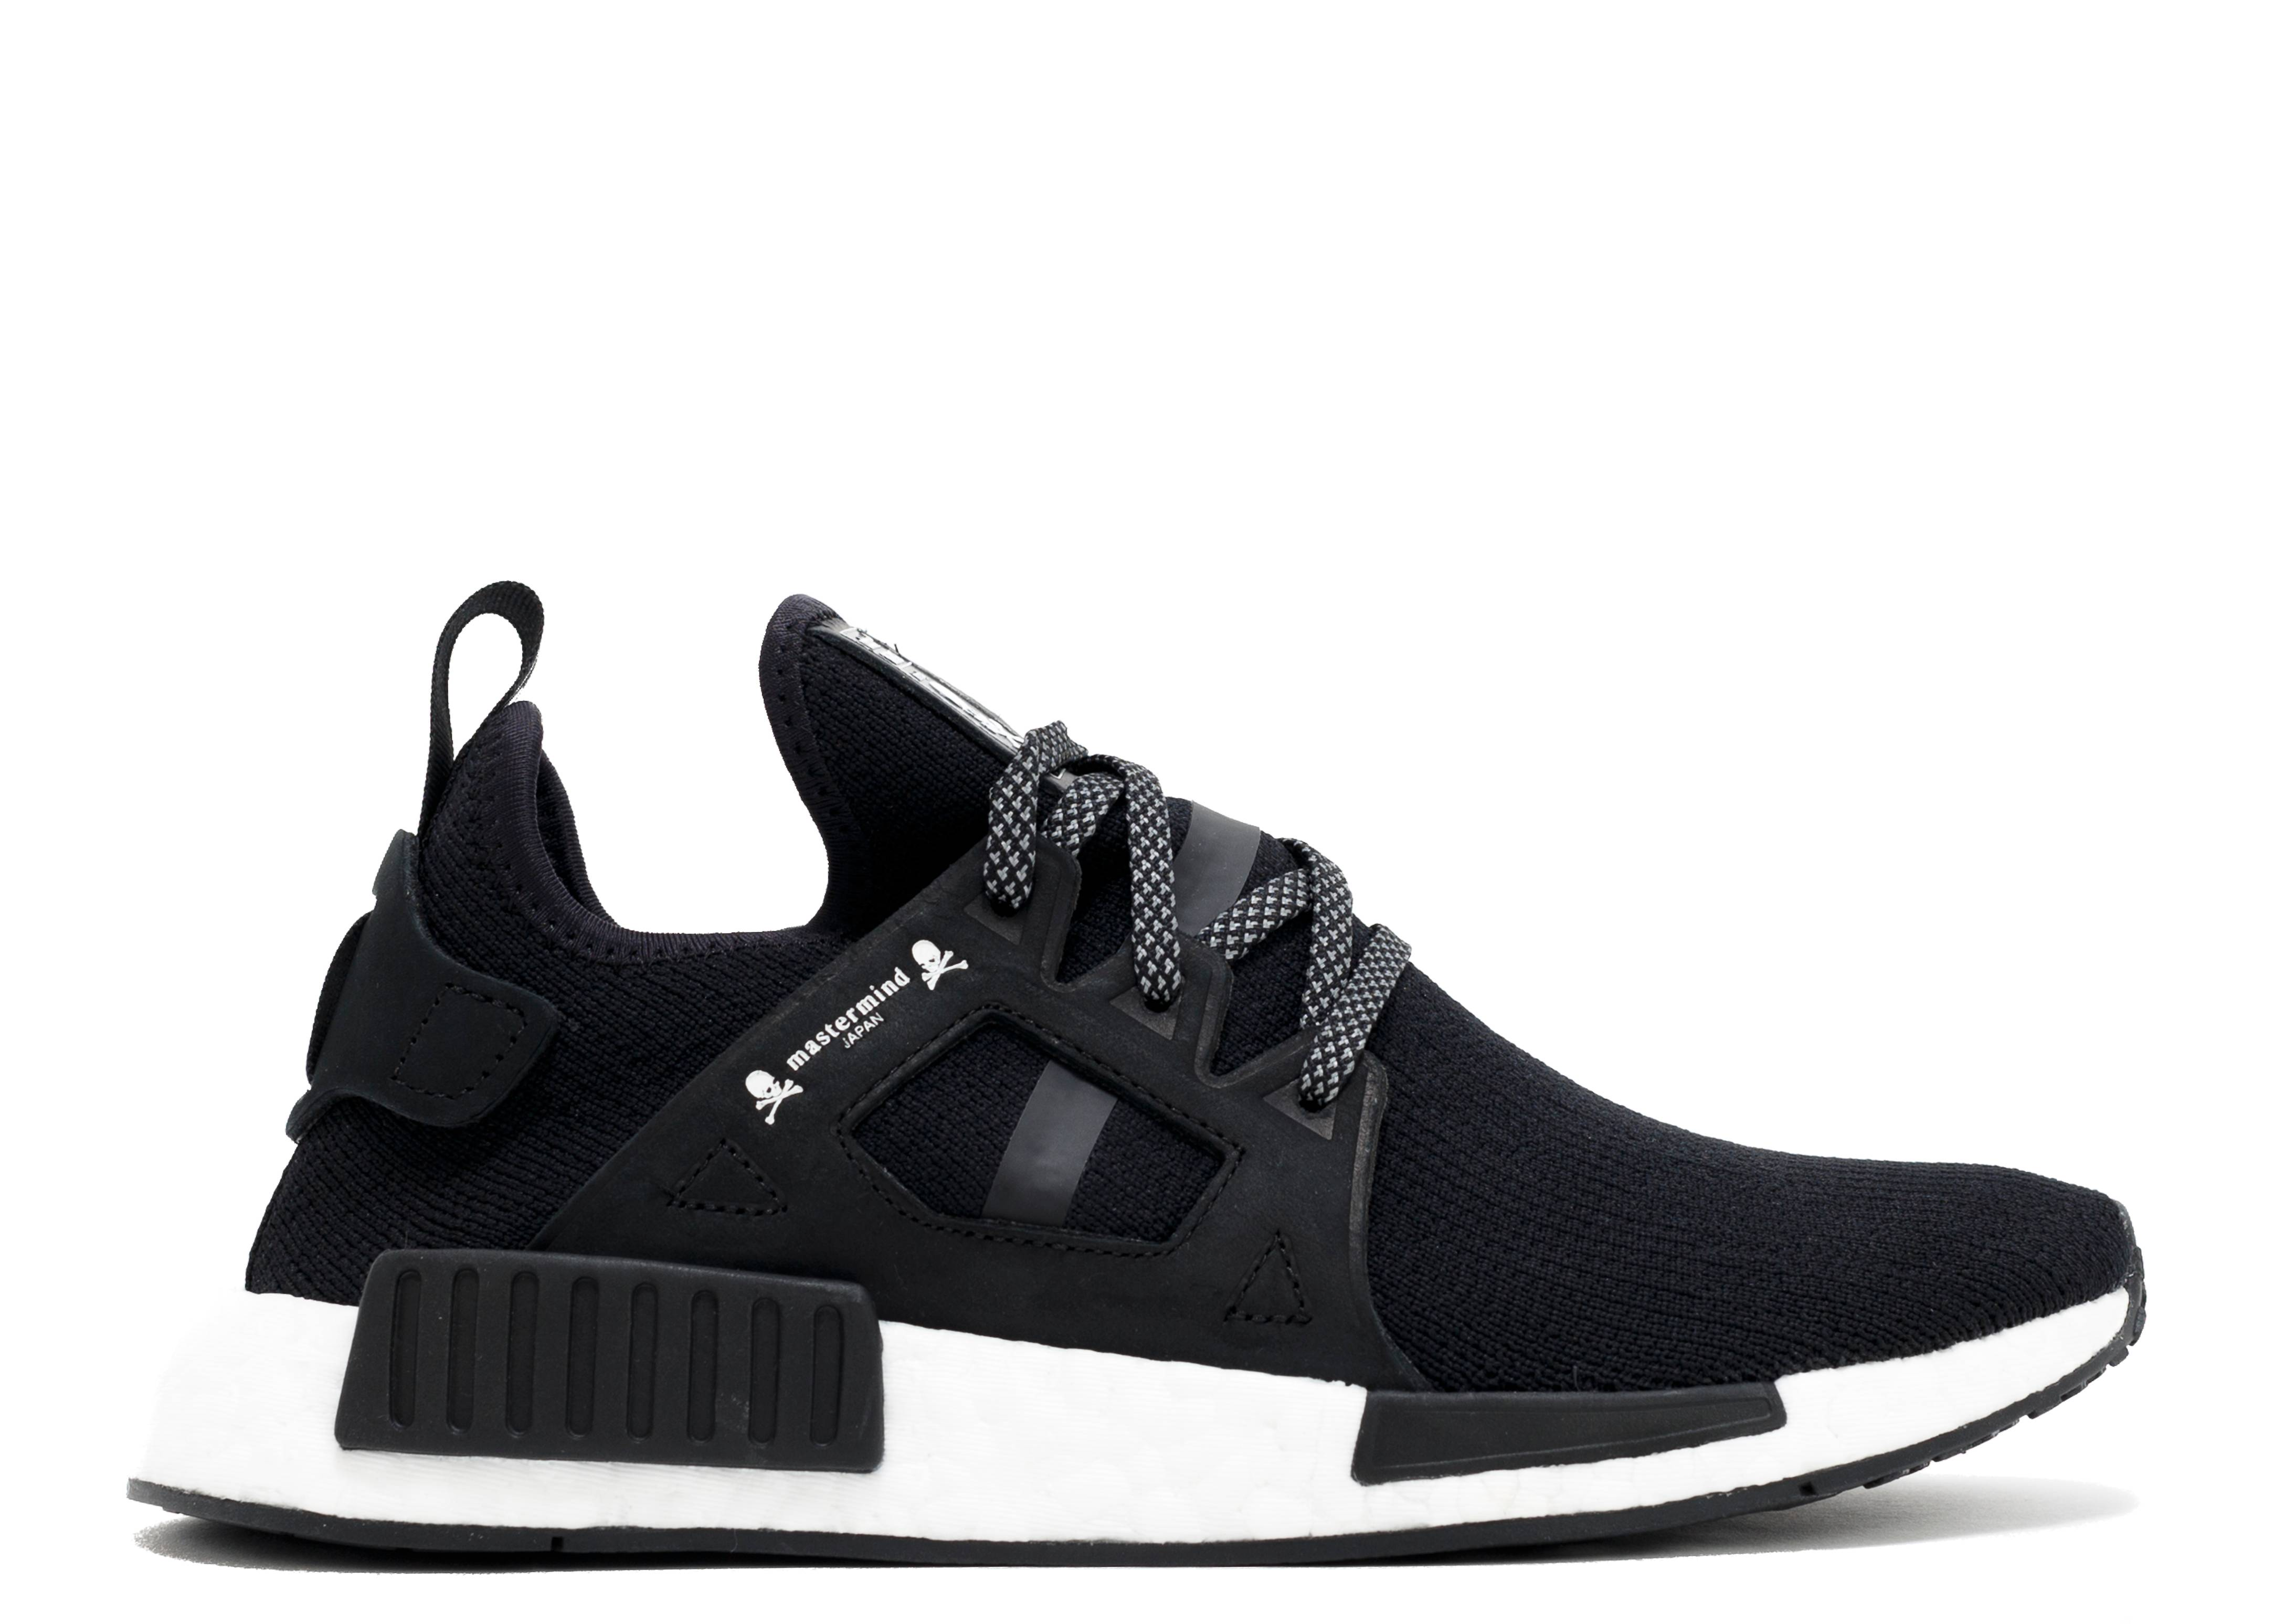 Ujparis Last Sizes Available. The Adidas Originals NMD XR 1 Gray